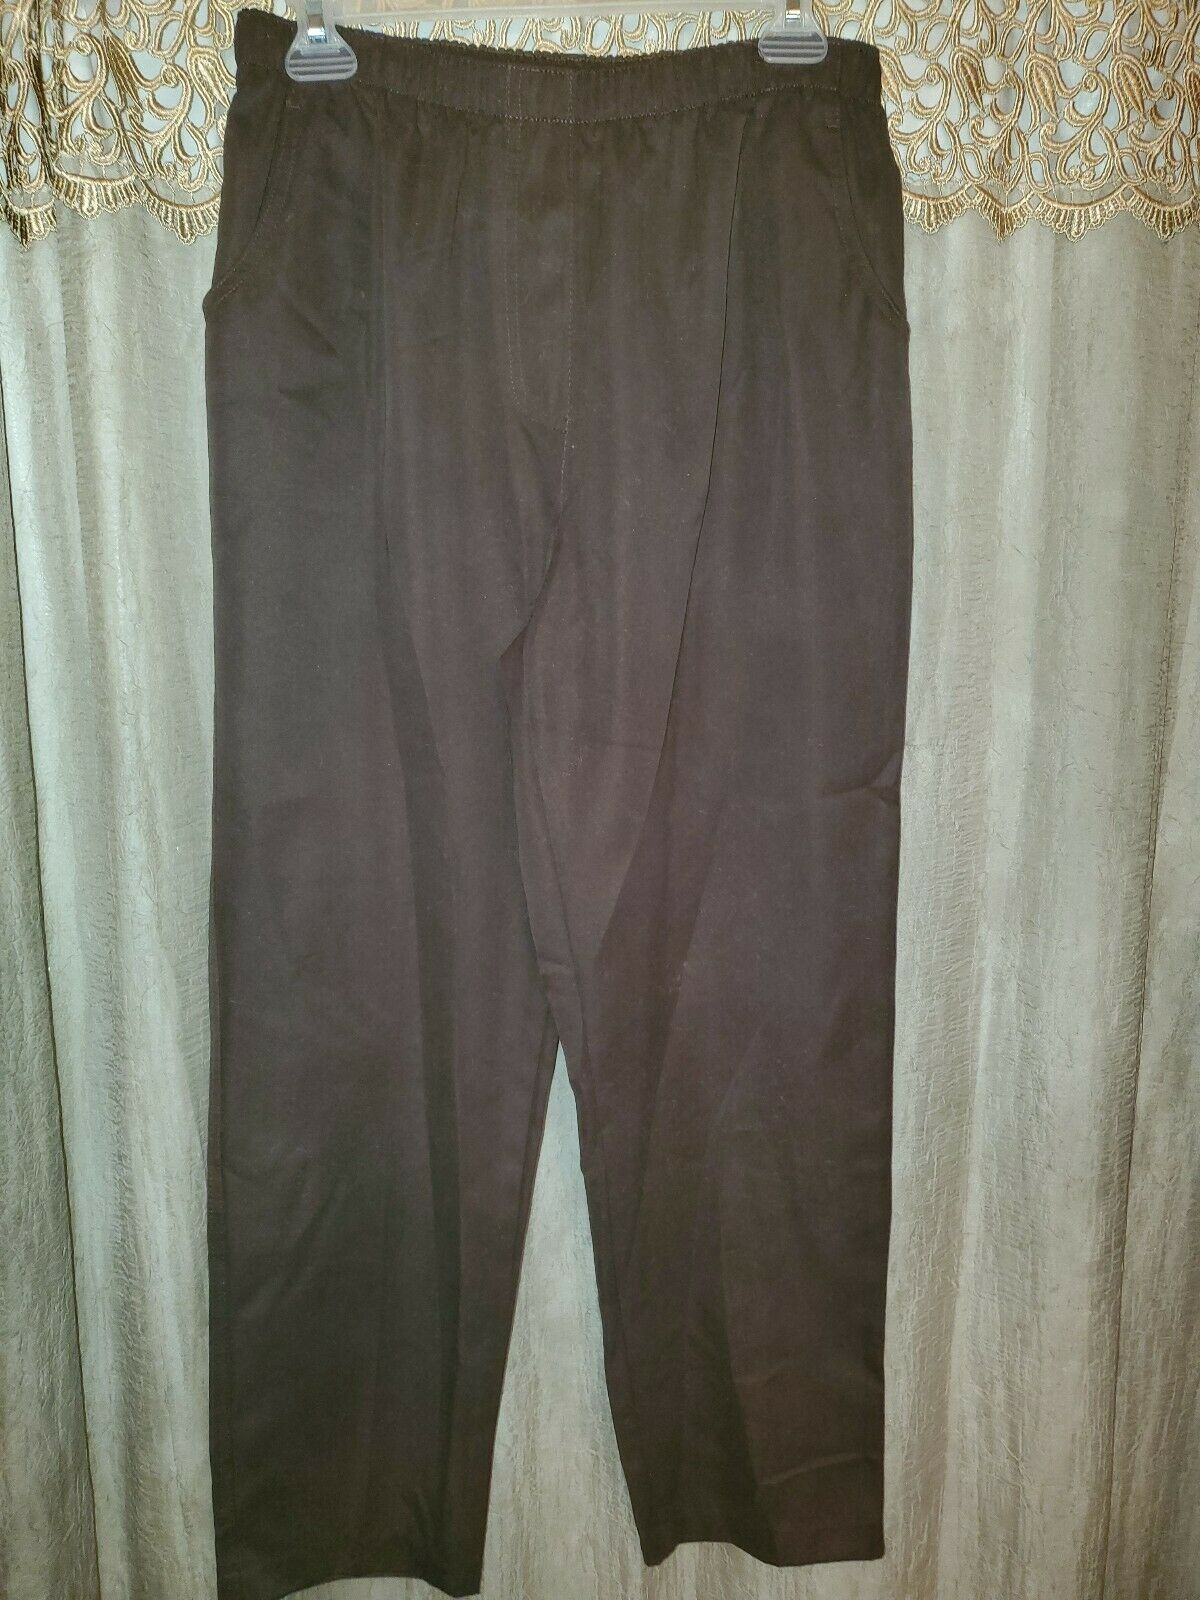 LIVERPOOL WOMEN/'S LEGGINGS JEGGINGS LM2133BB PONTE STRETCH PULL ON PANTS NEW